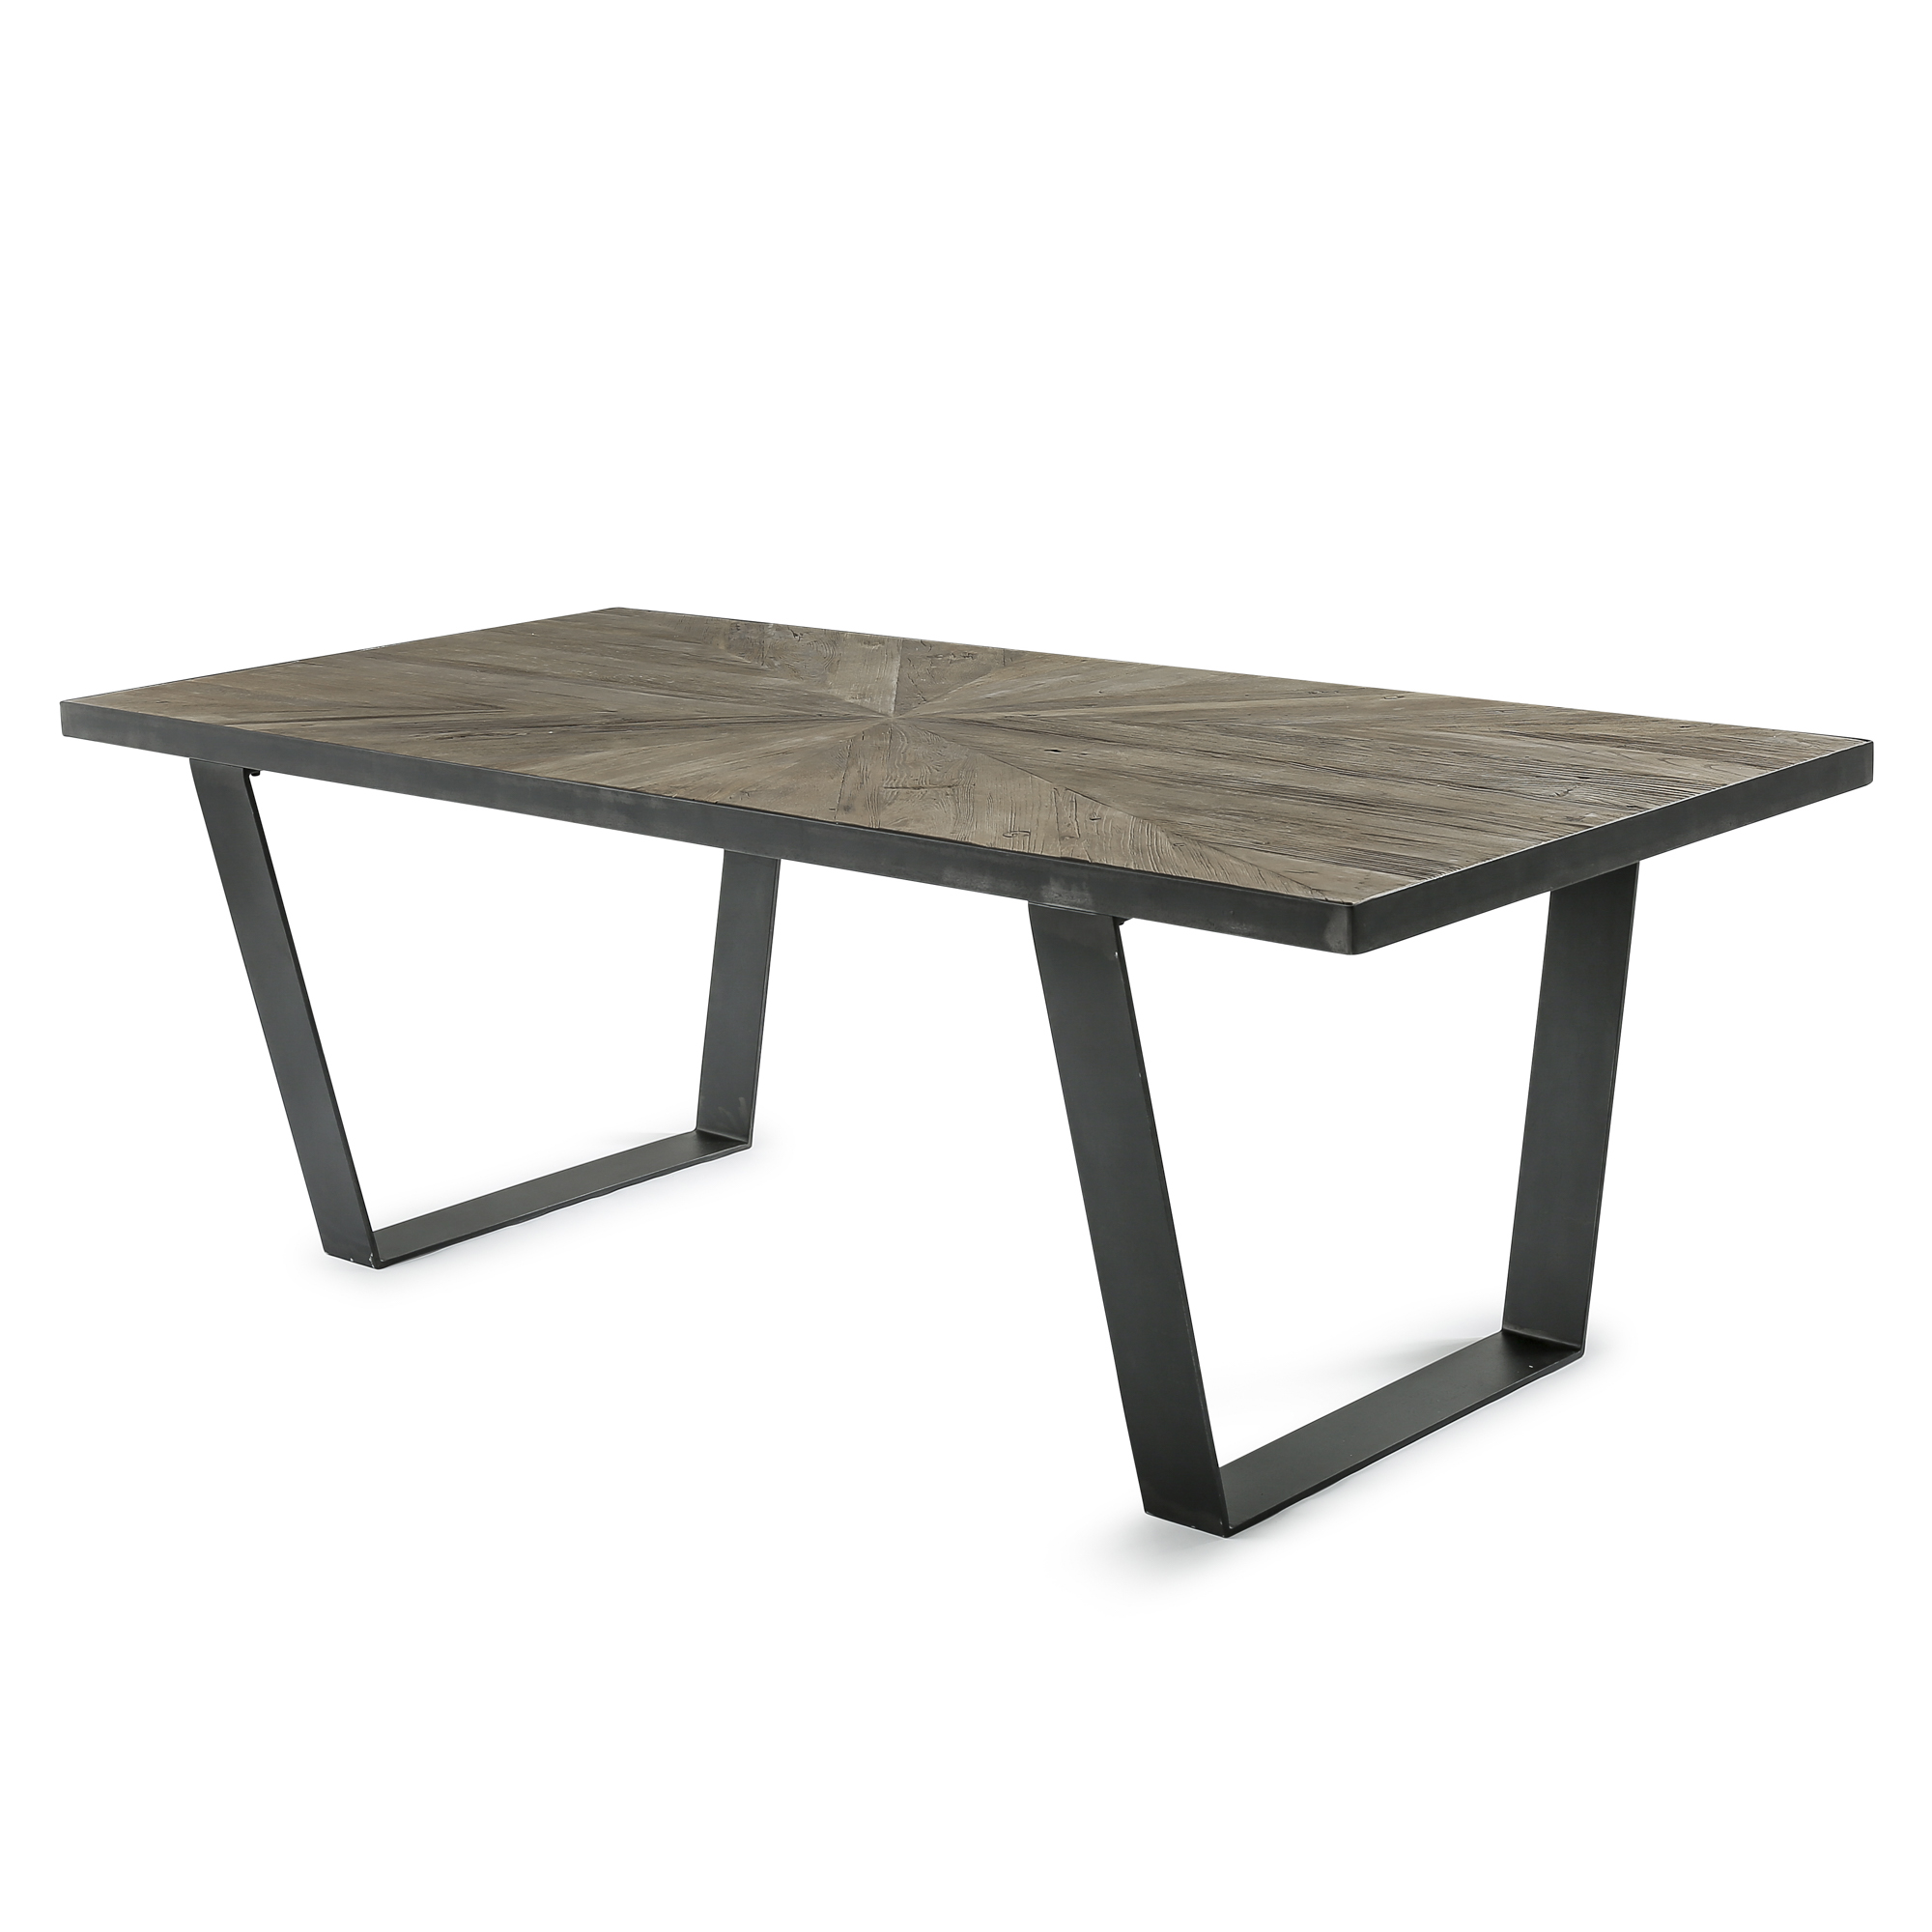 2.2m Aspen Parket Reclaimed Solid Elm Dining Table